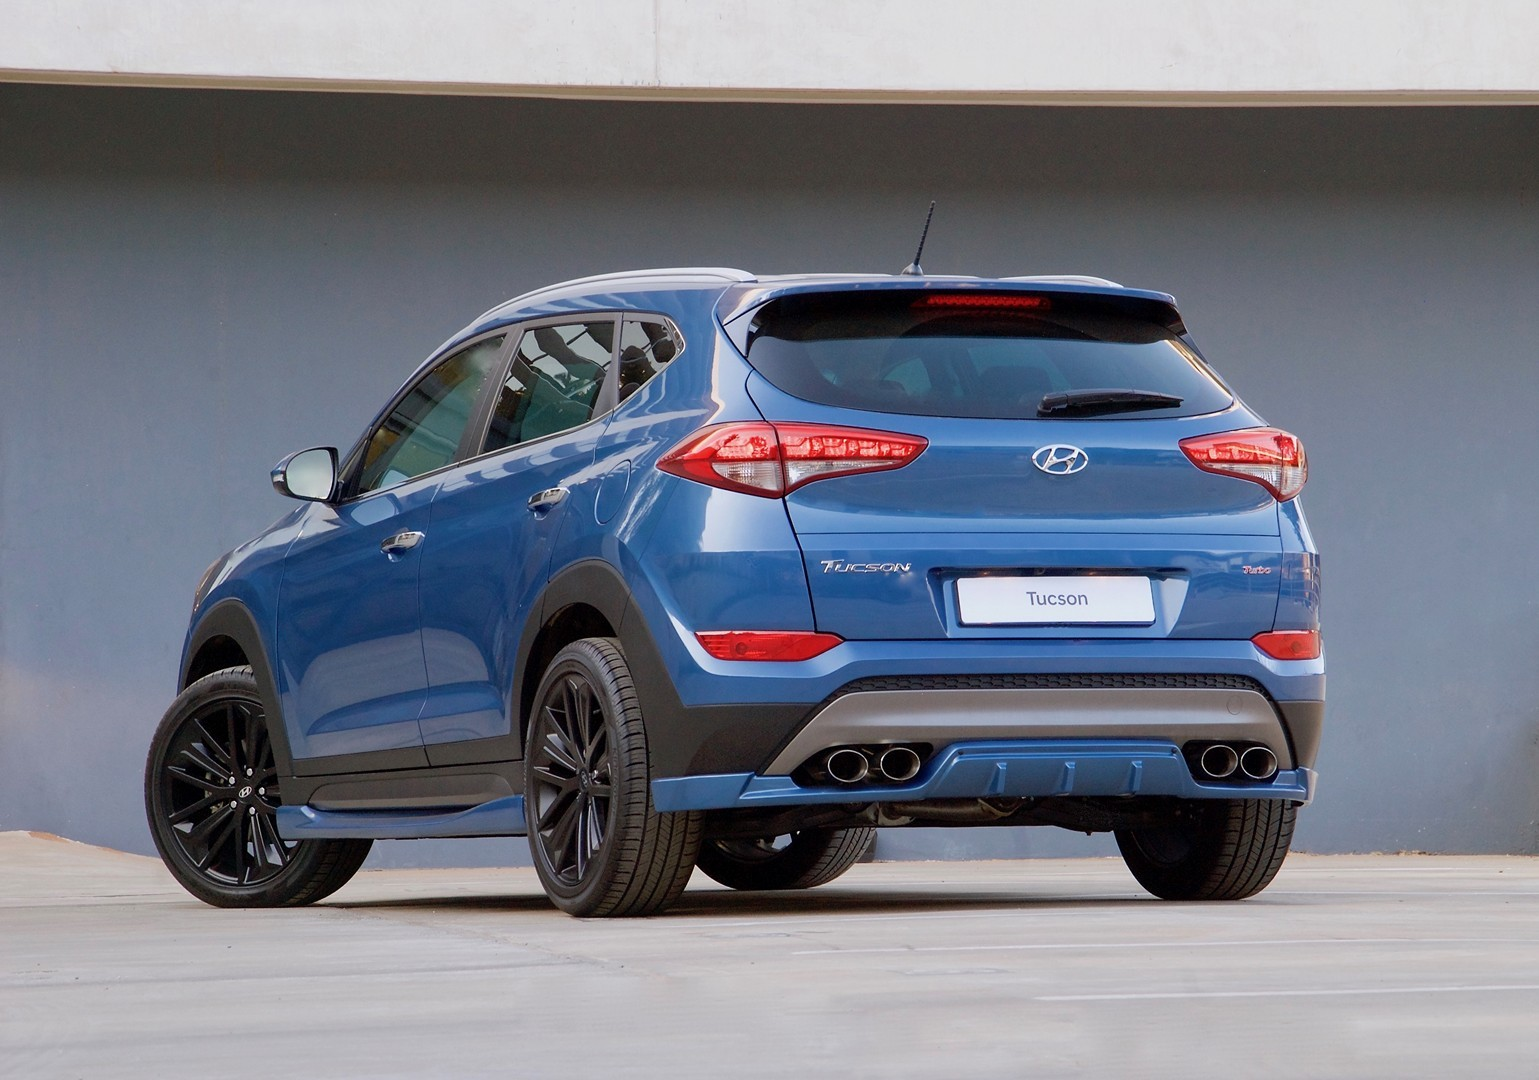 hyundai tucson sport has body kit quad pipes and 204 hp 1 6l turbo autoevolution. Black Bedroom Furniture Sets. Home Design Ideas